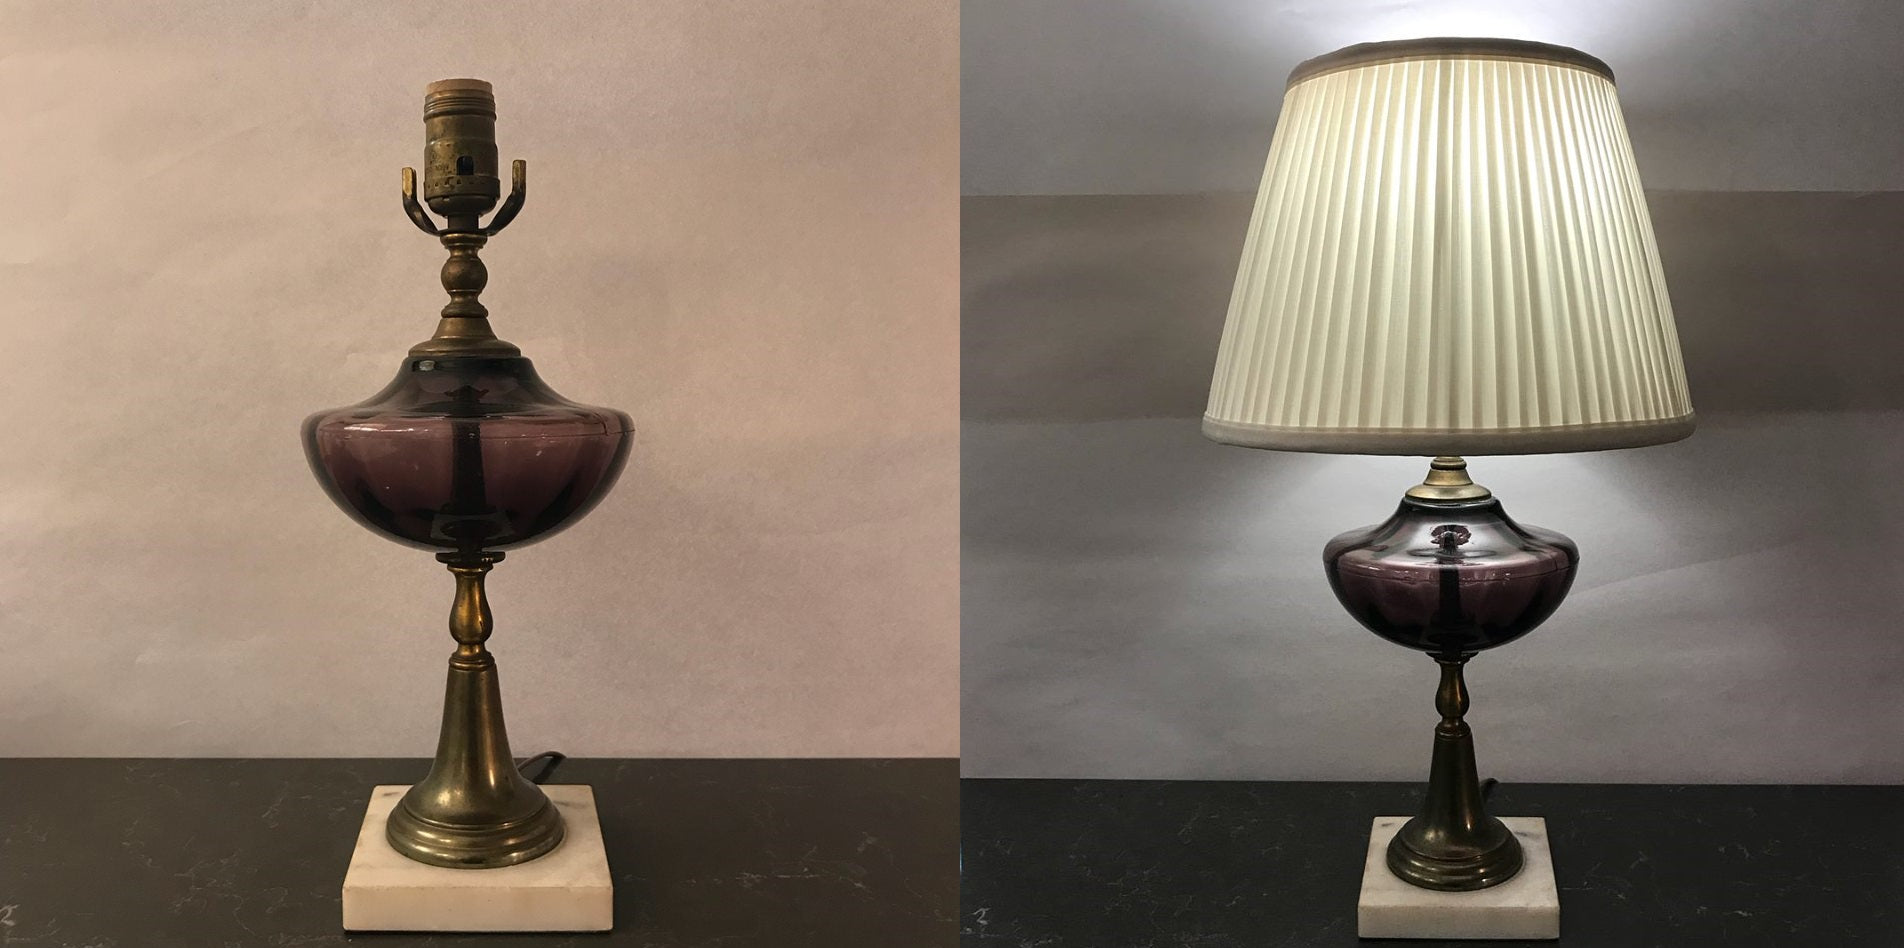 How to Make an Old Lamp Look New — Oriental Lamp Shade Co Rewiring Old Lamp on old clocks, old windows, old telephones, old toys, old antiques, old paintings, old fireplaces, old ceiling fans, old mirrors, old ceiling lights, old wall sconces, old musical instruments,